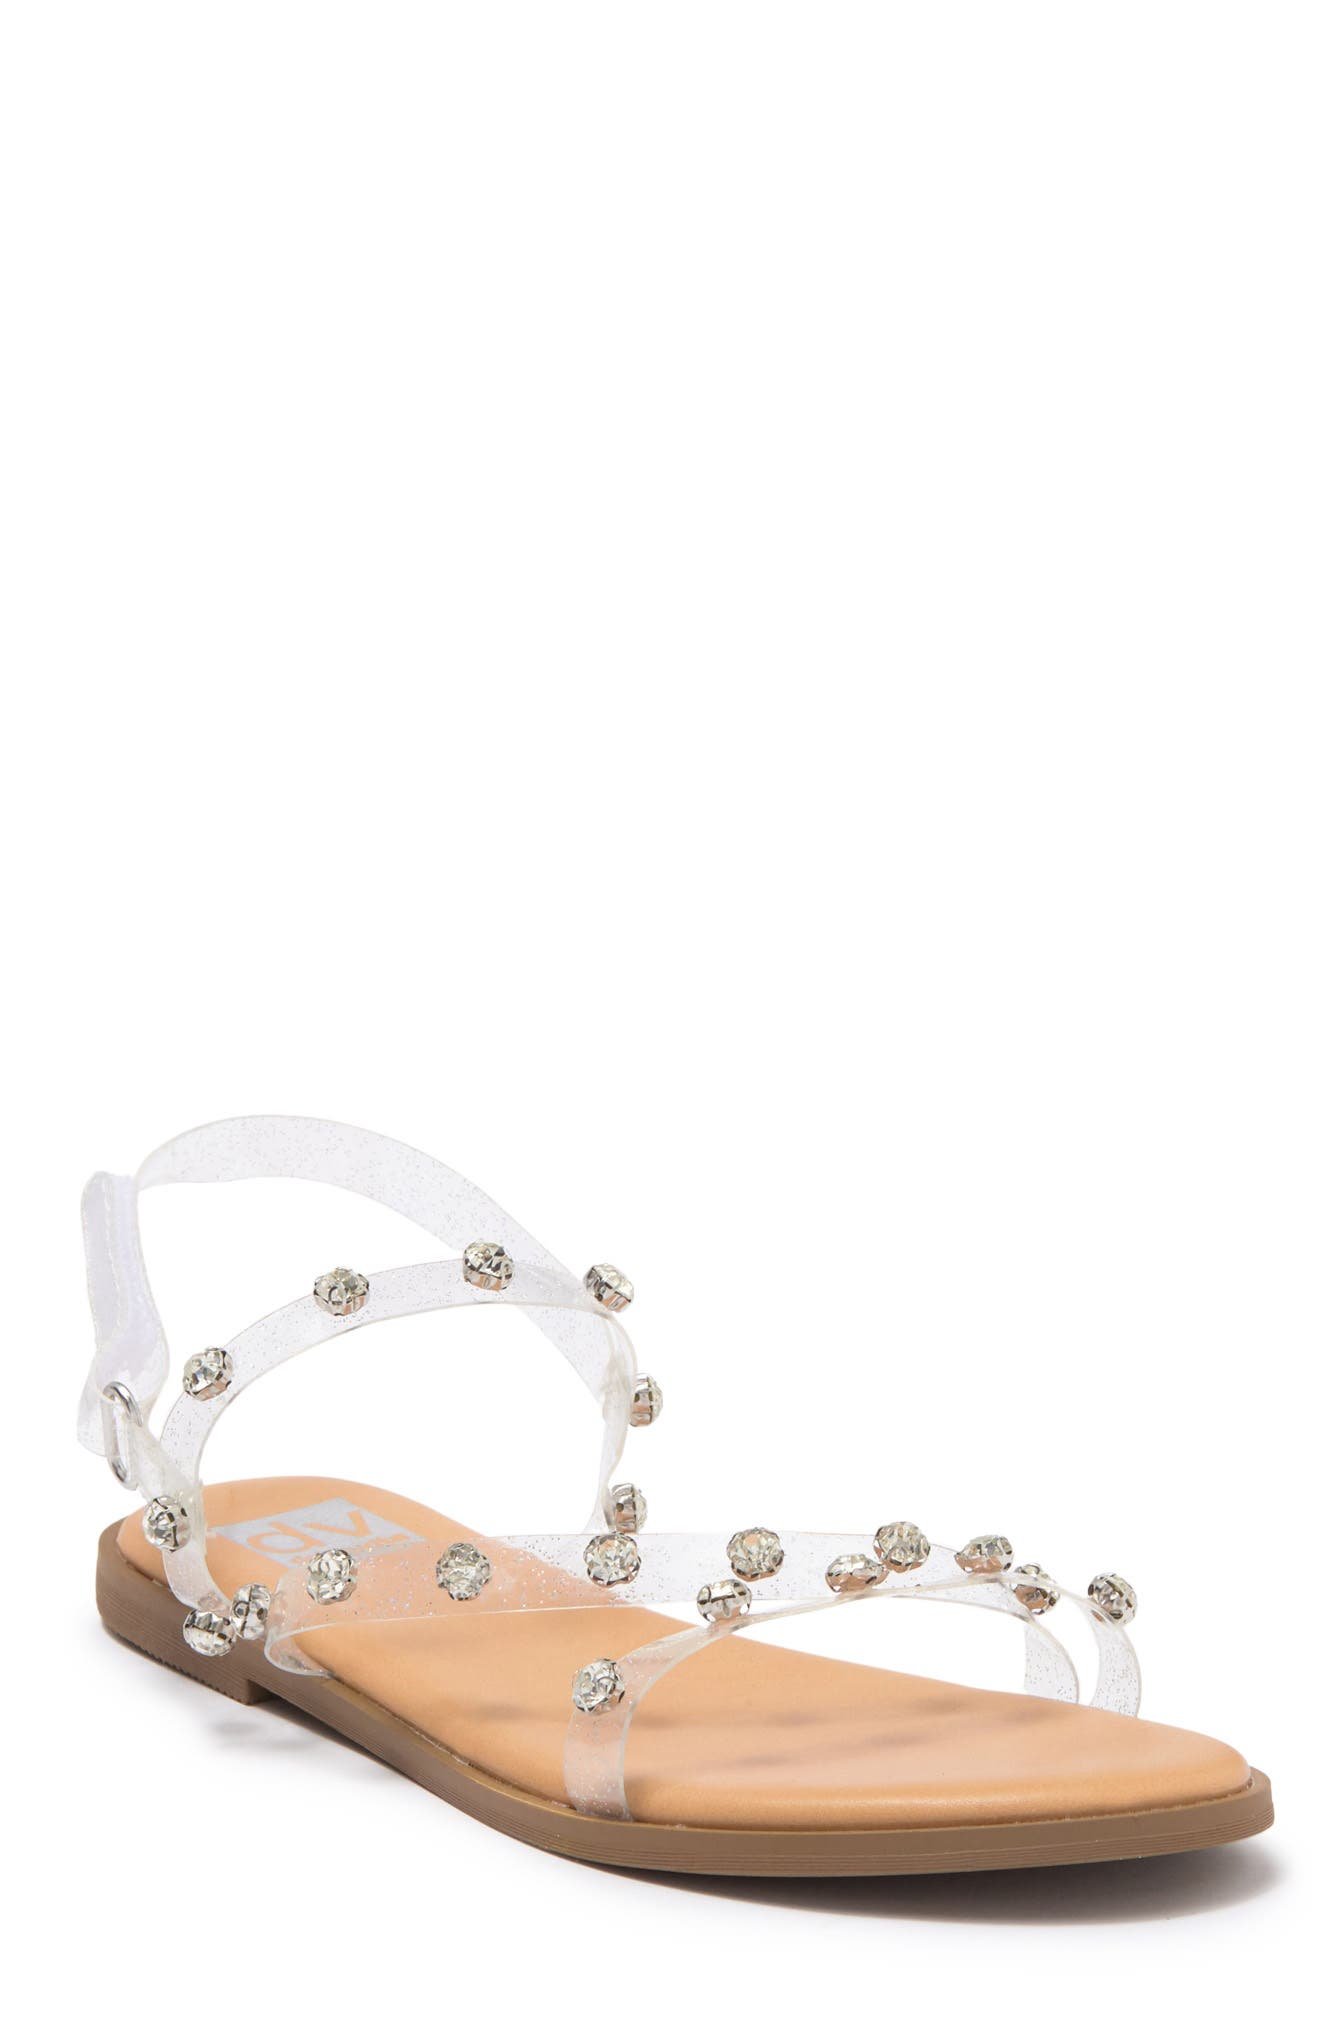 Image of Dolce Vita Taby Crystal Embellished Clear Sandal